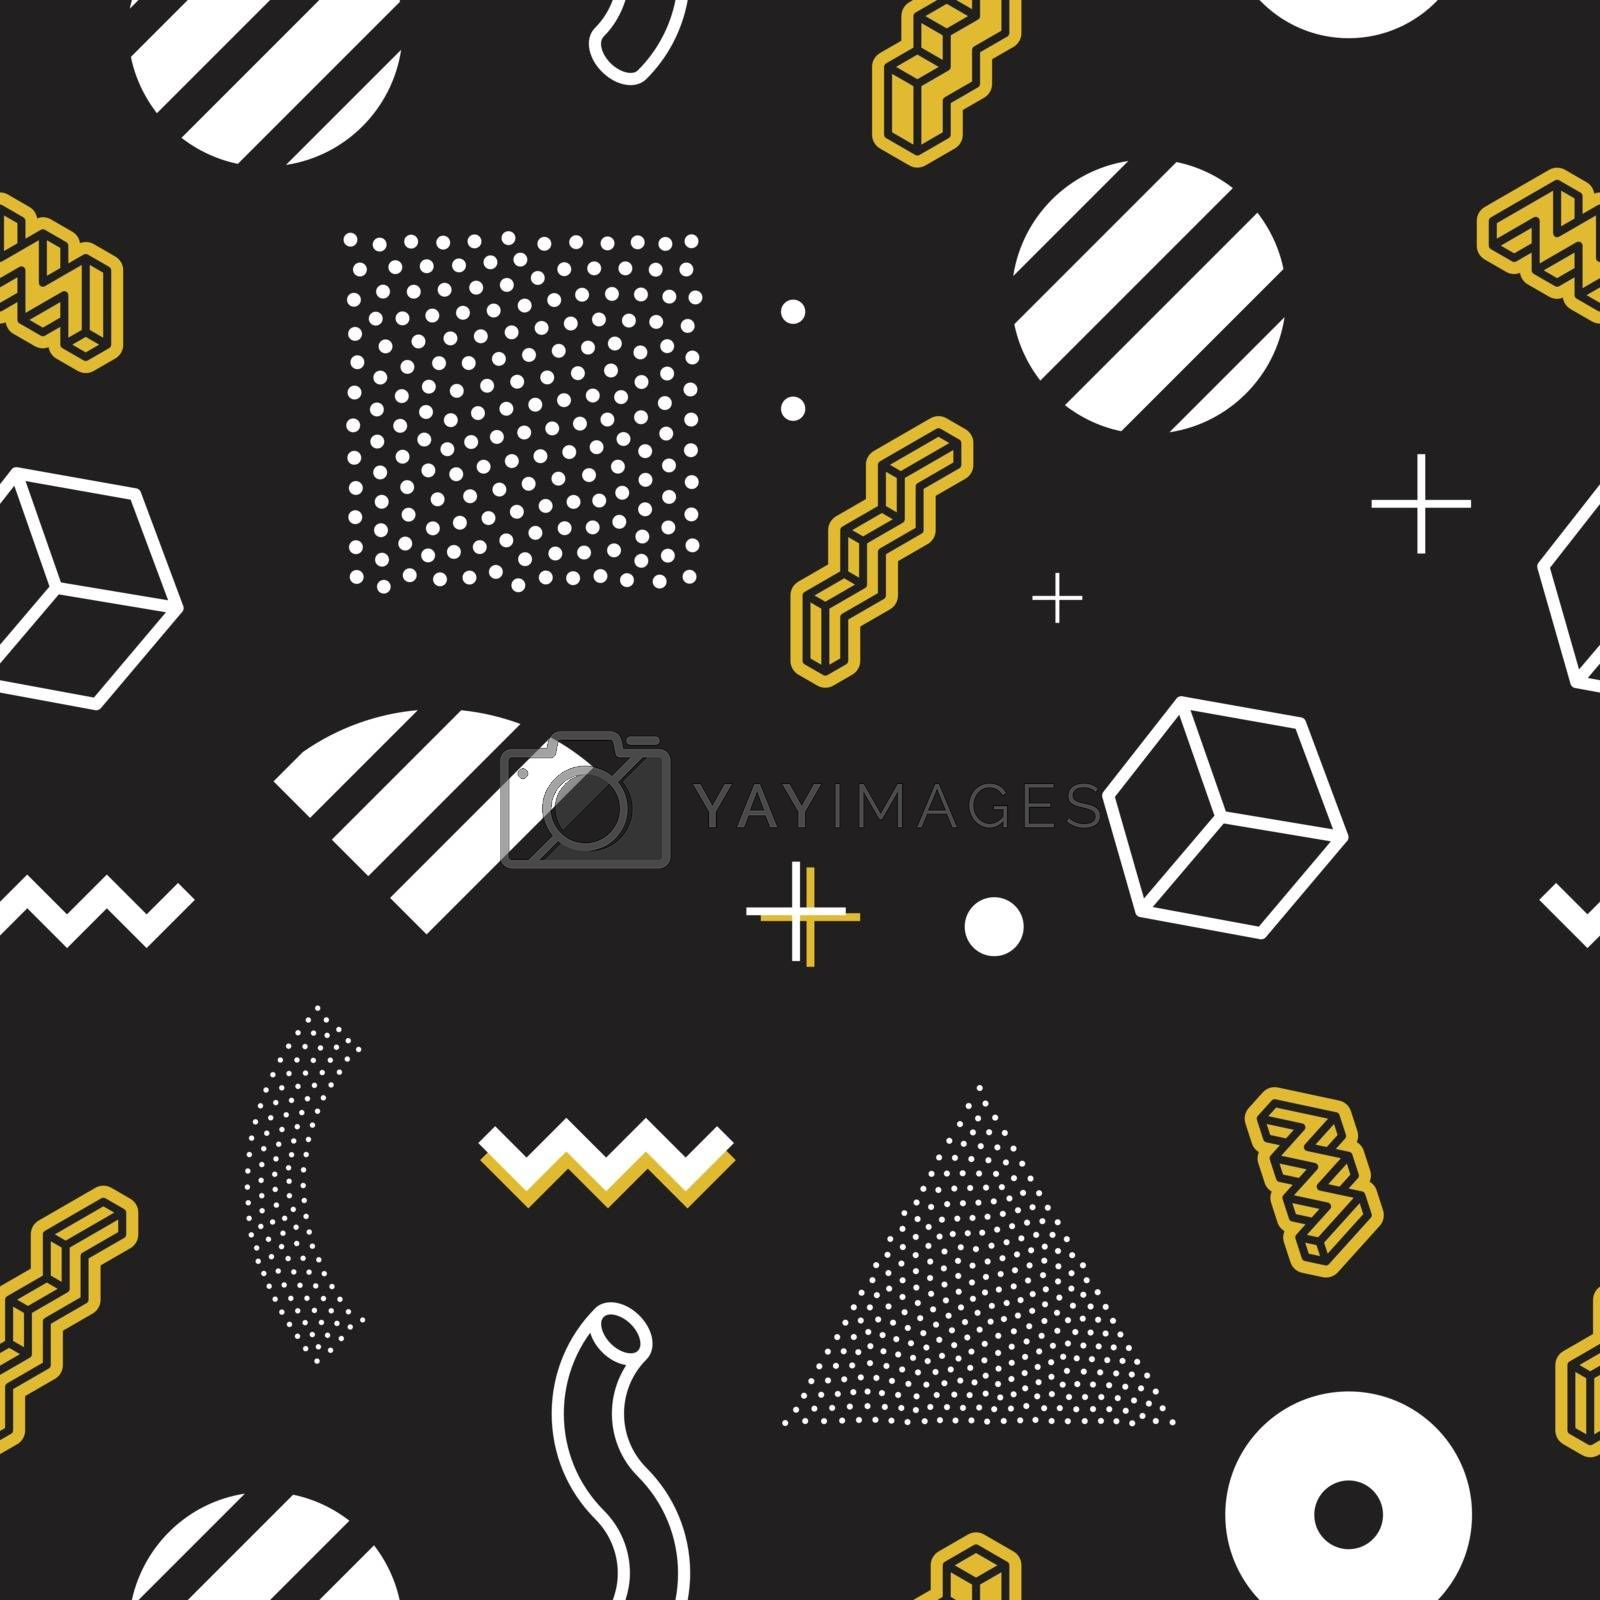 Geometric pattern for fashion and wallpaper. Memphis style for fashion